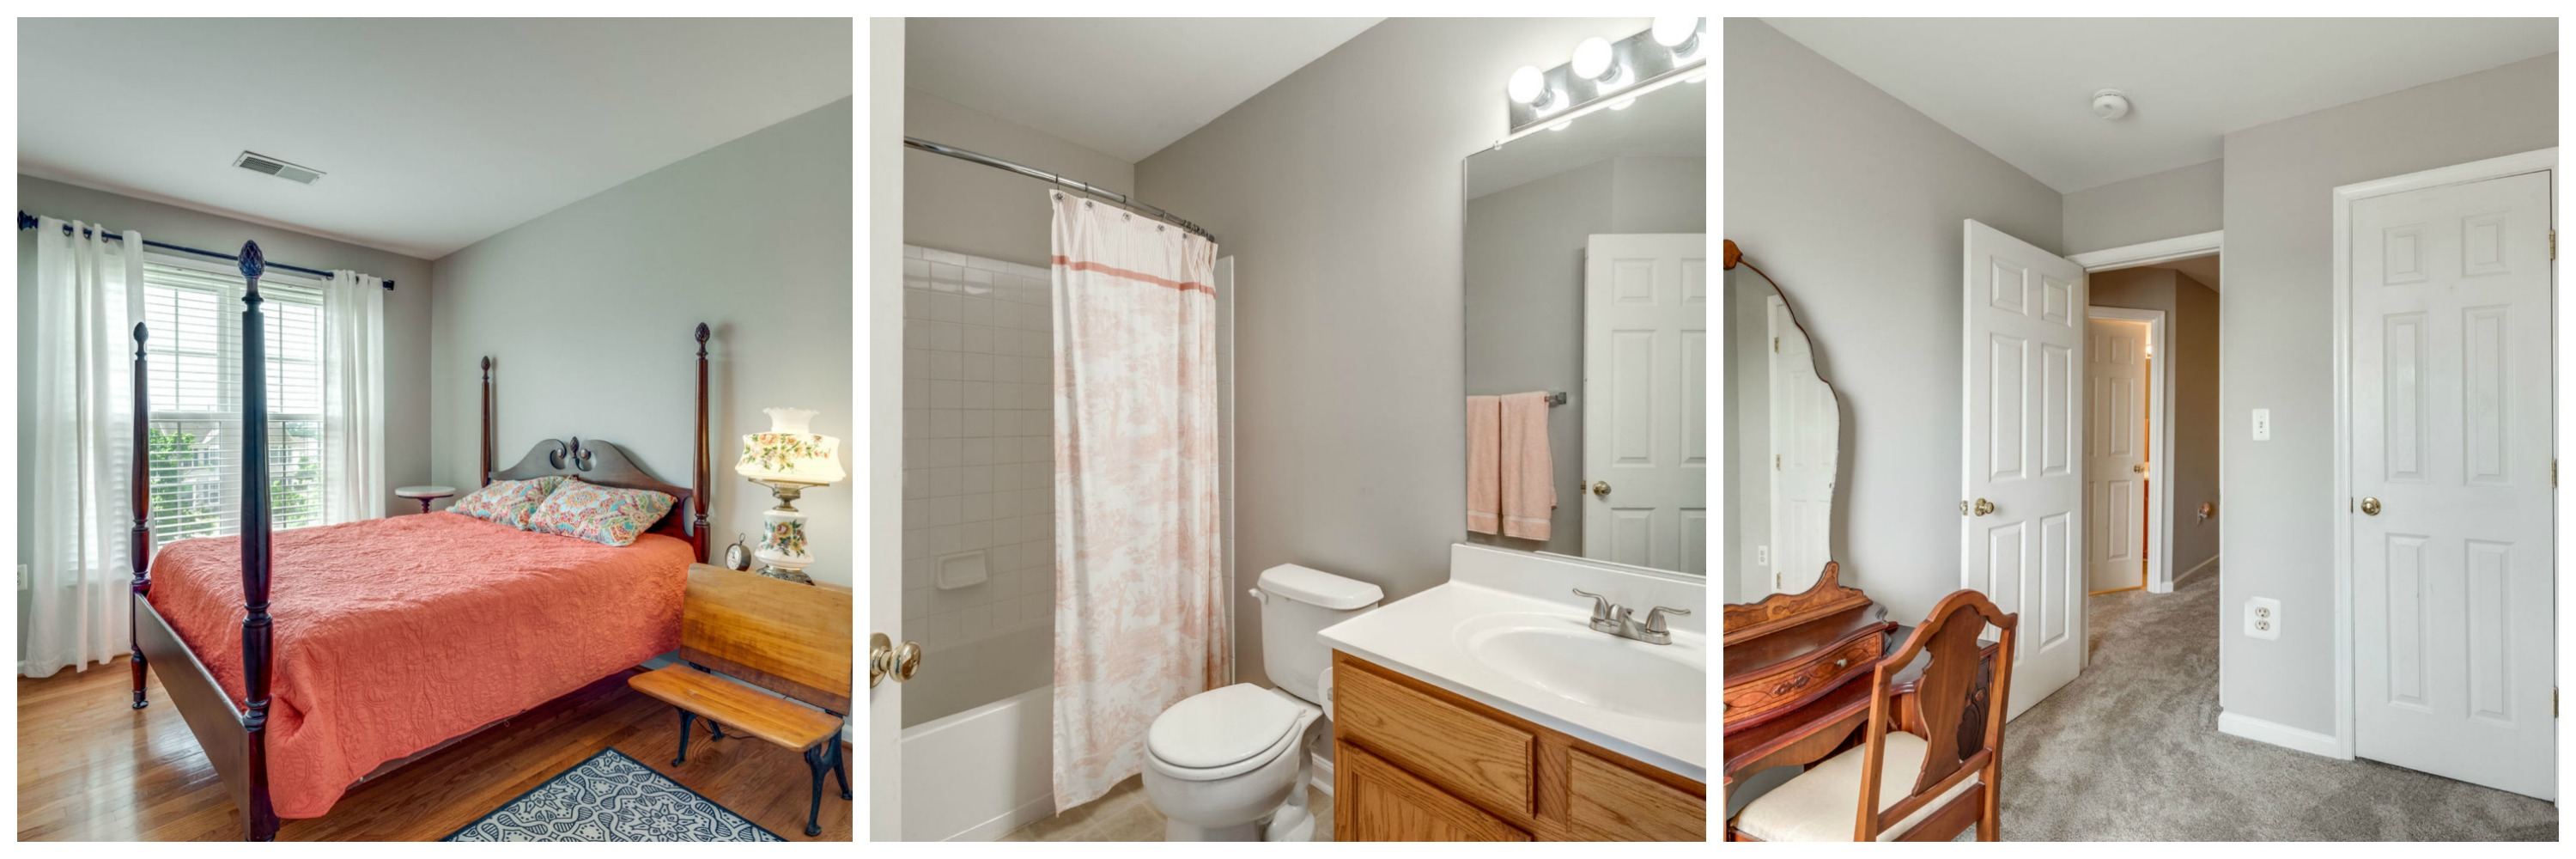 453 Pearlbush Sq NE _ Leesburg _ Additional Bedrooms and Bath